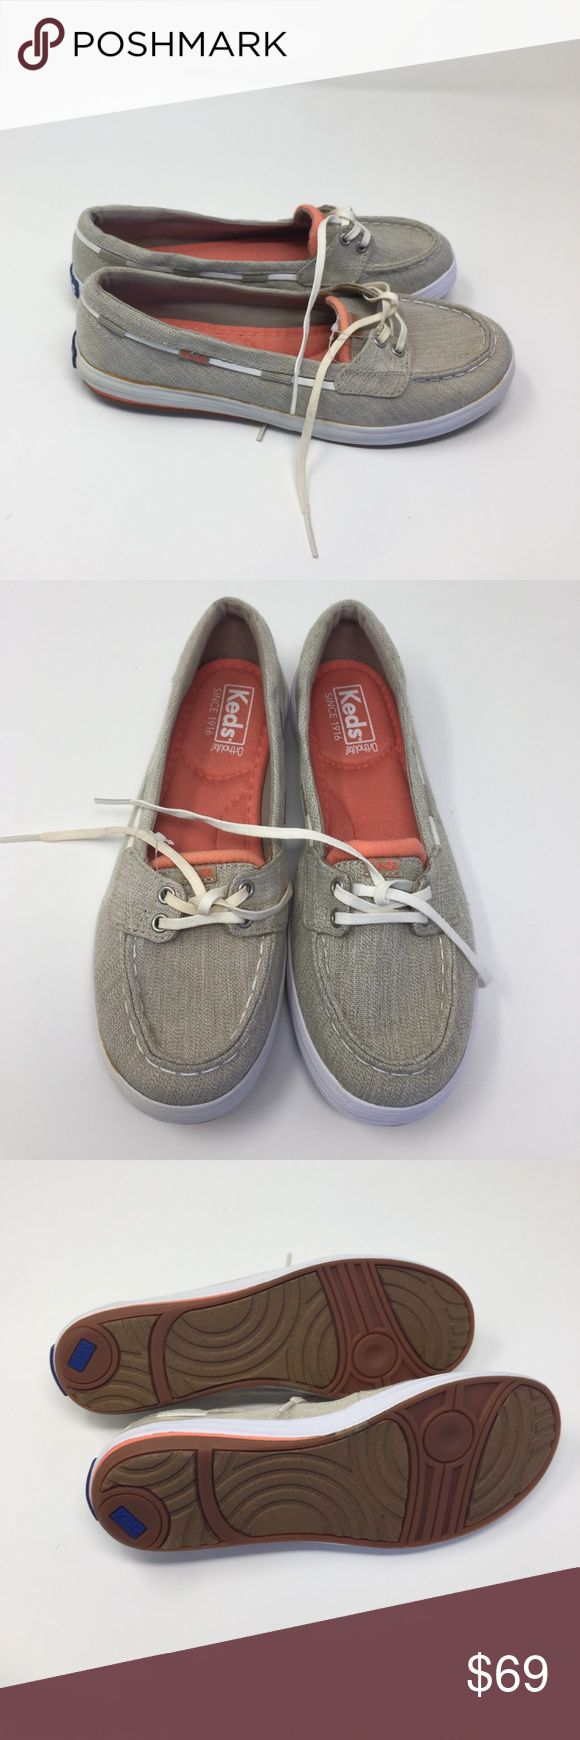 Women's Keds Shoes Glimmer Boat shoes tan 6 a1 These are new without box has some defects on it shoe strings off-color and glue stain on side tan color size 6 Keds Shoes Flats & Loafers